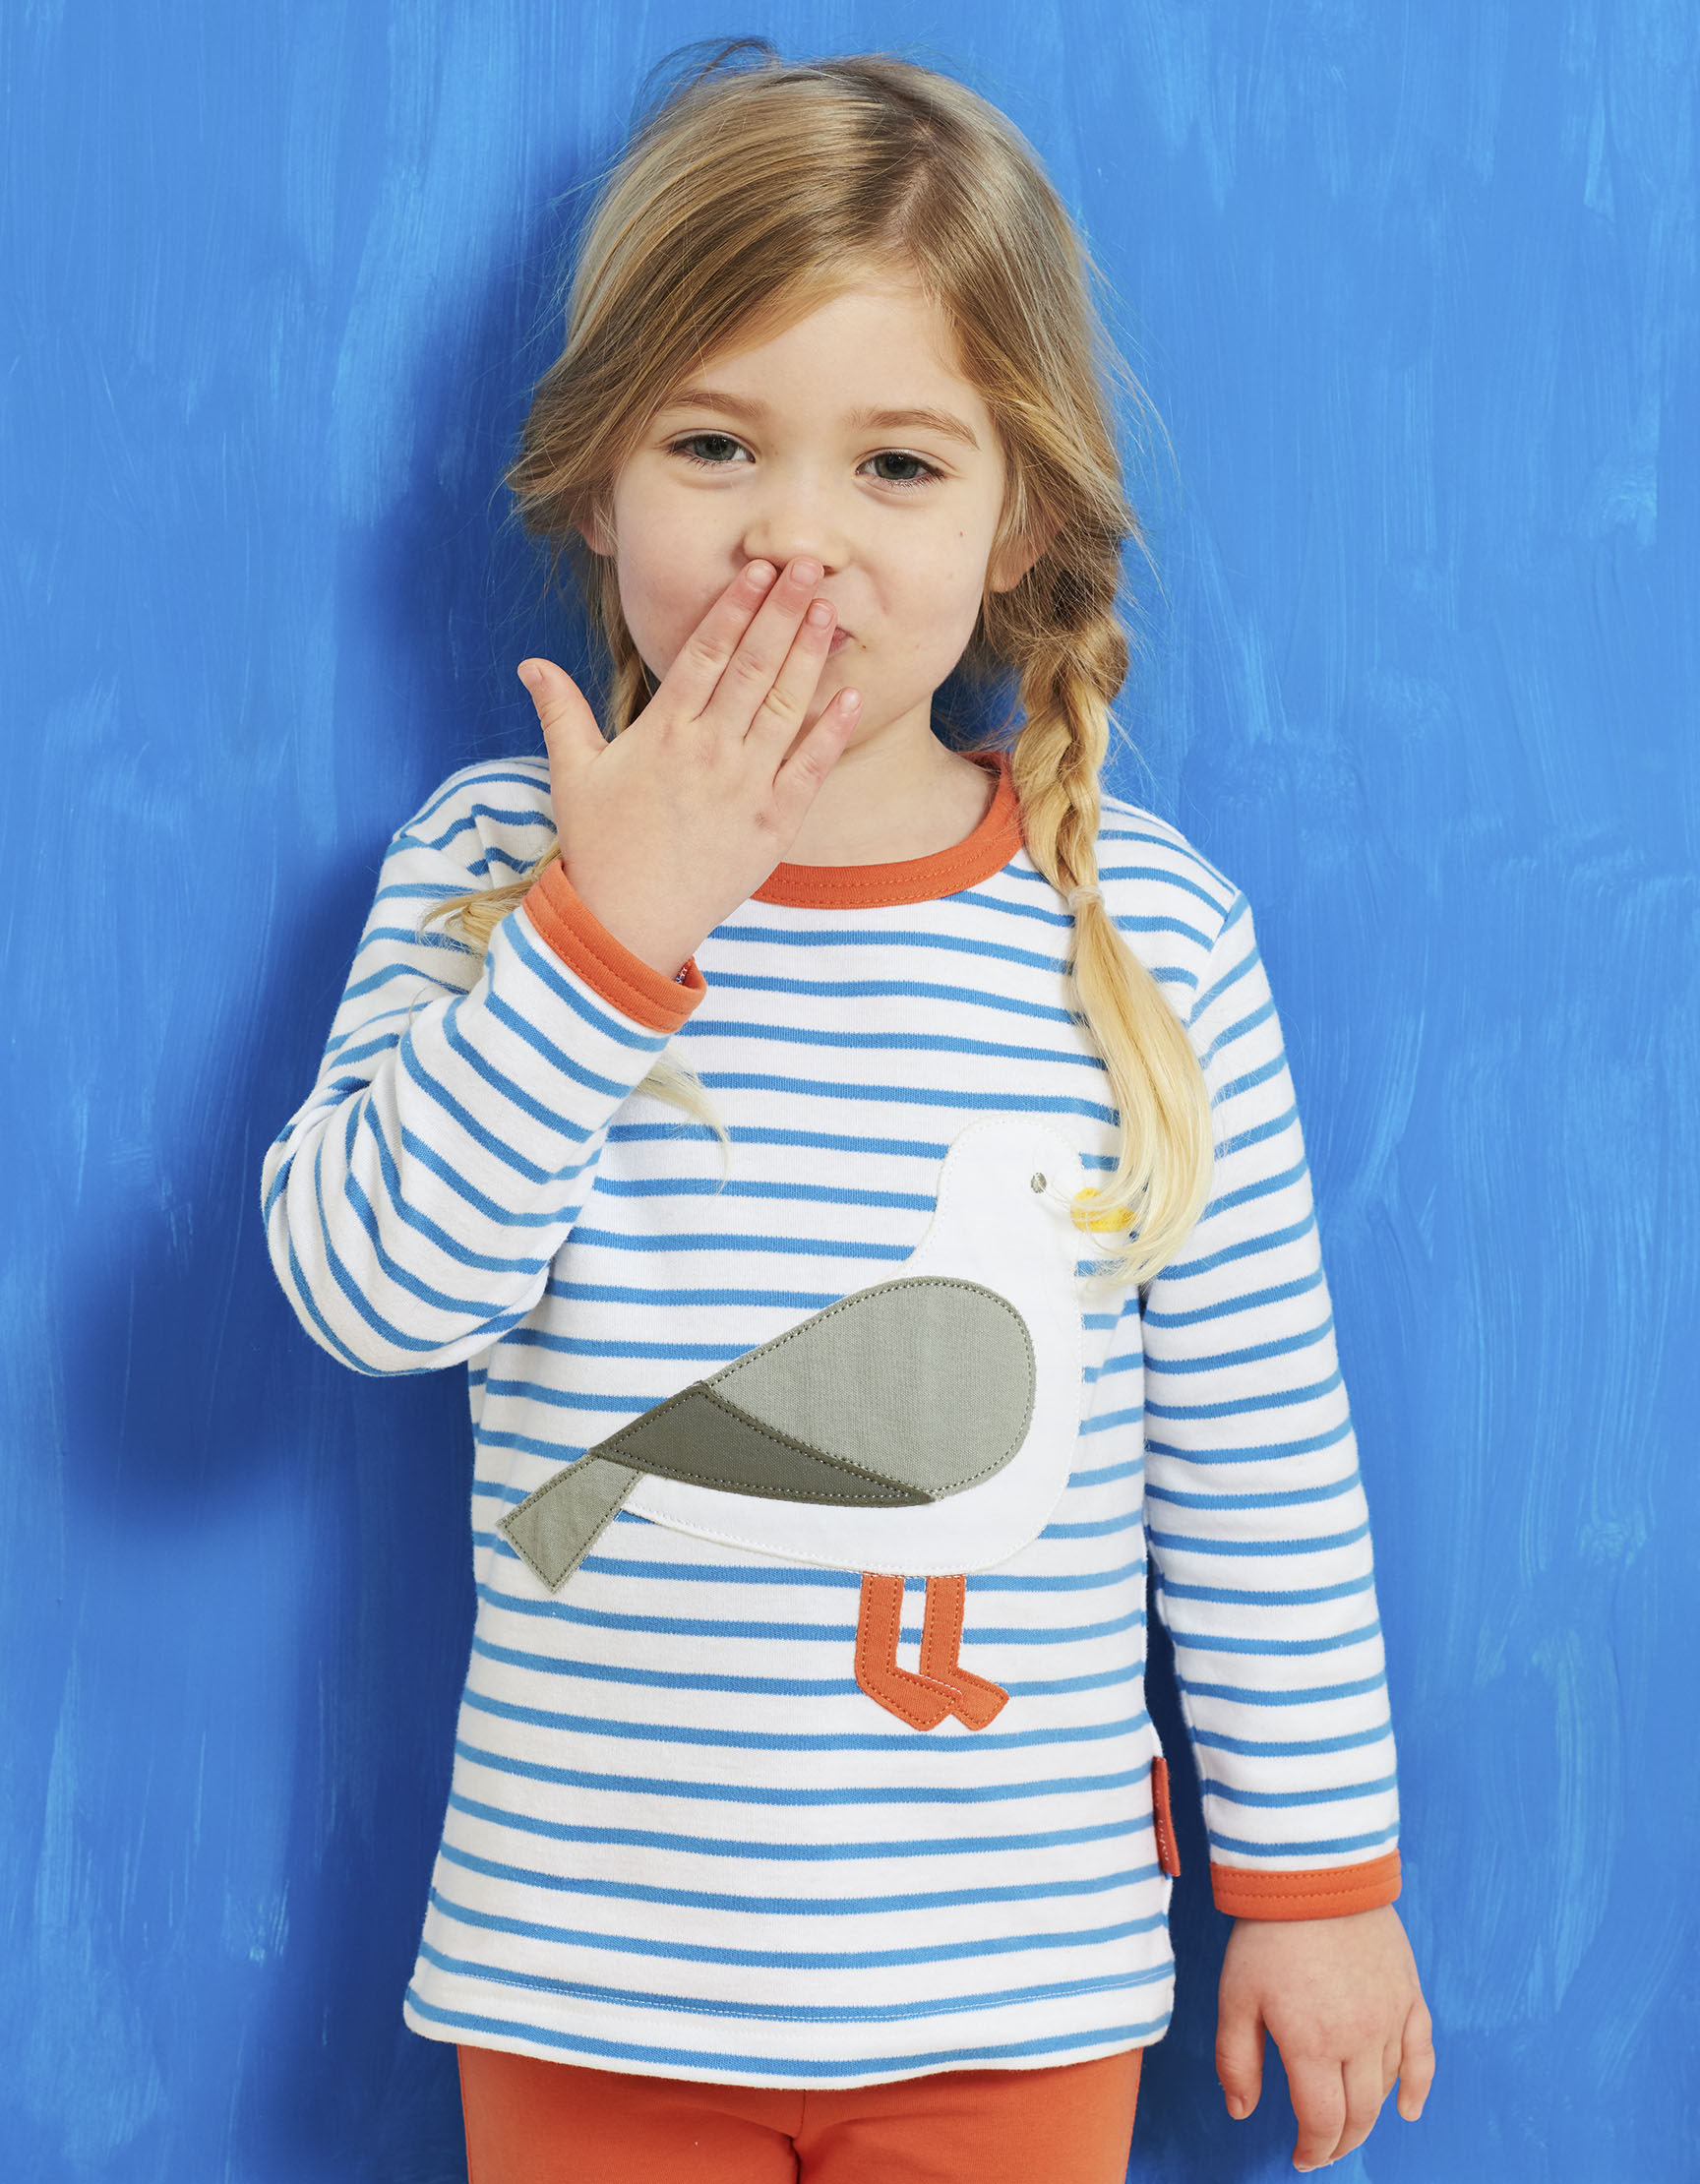 Little girl wearing Organic Cotton Seagull Applique T-Shirt from Toby Tiger